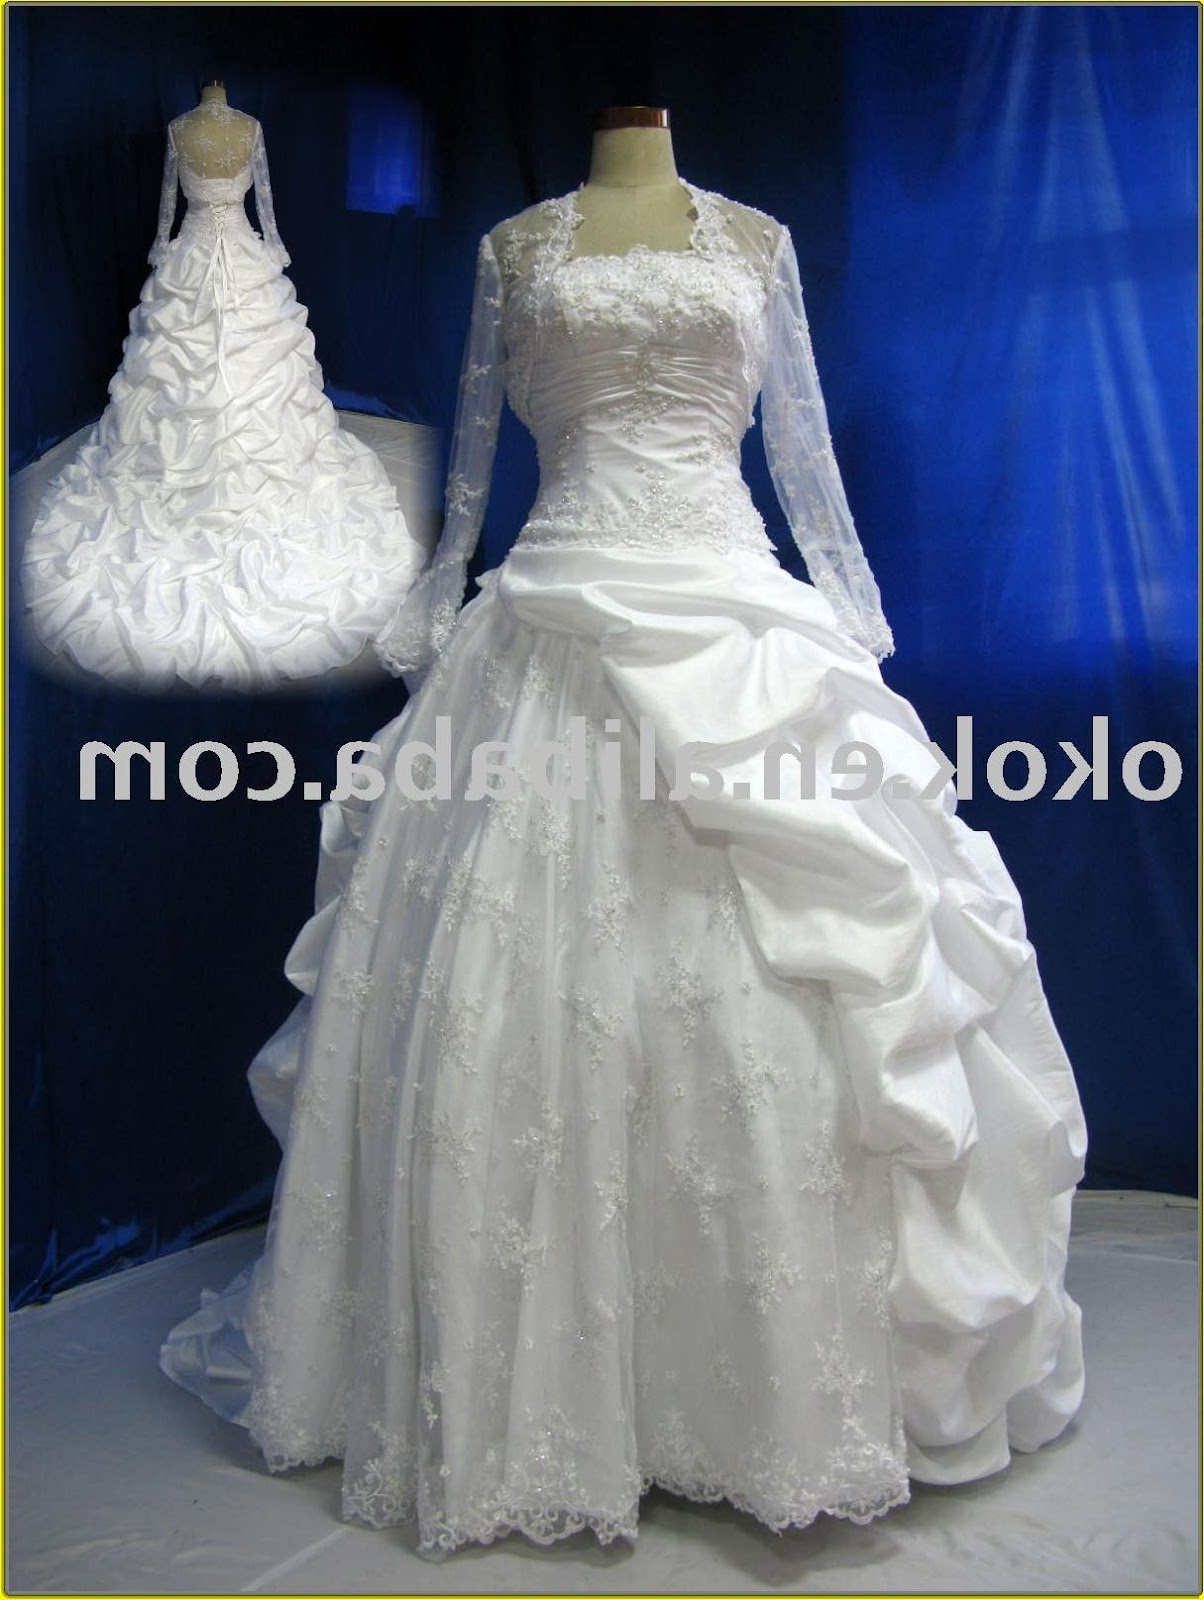 BW212 Long sleeve bridal gown